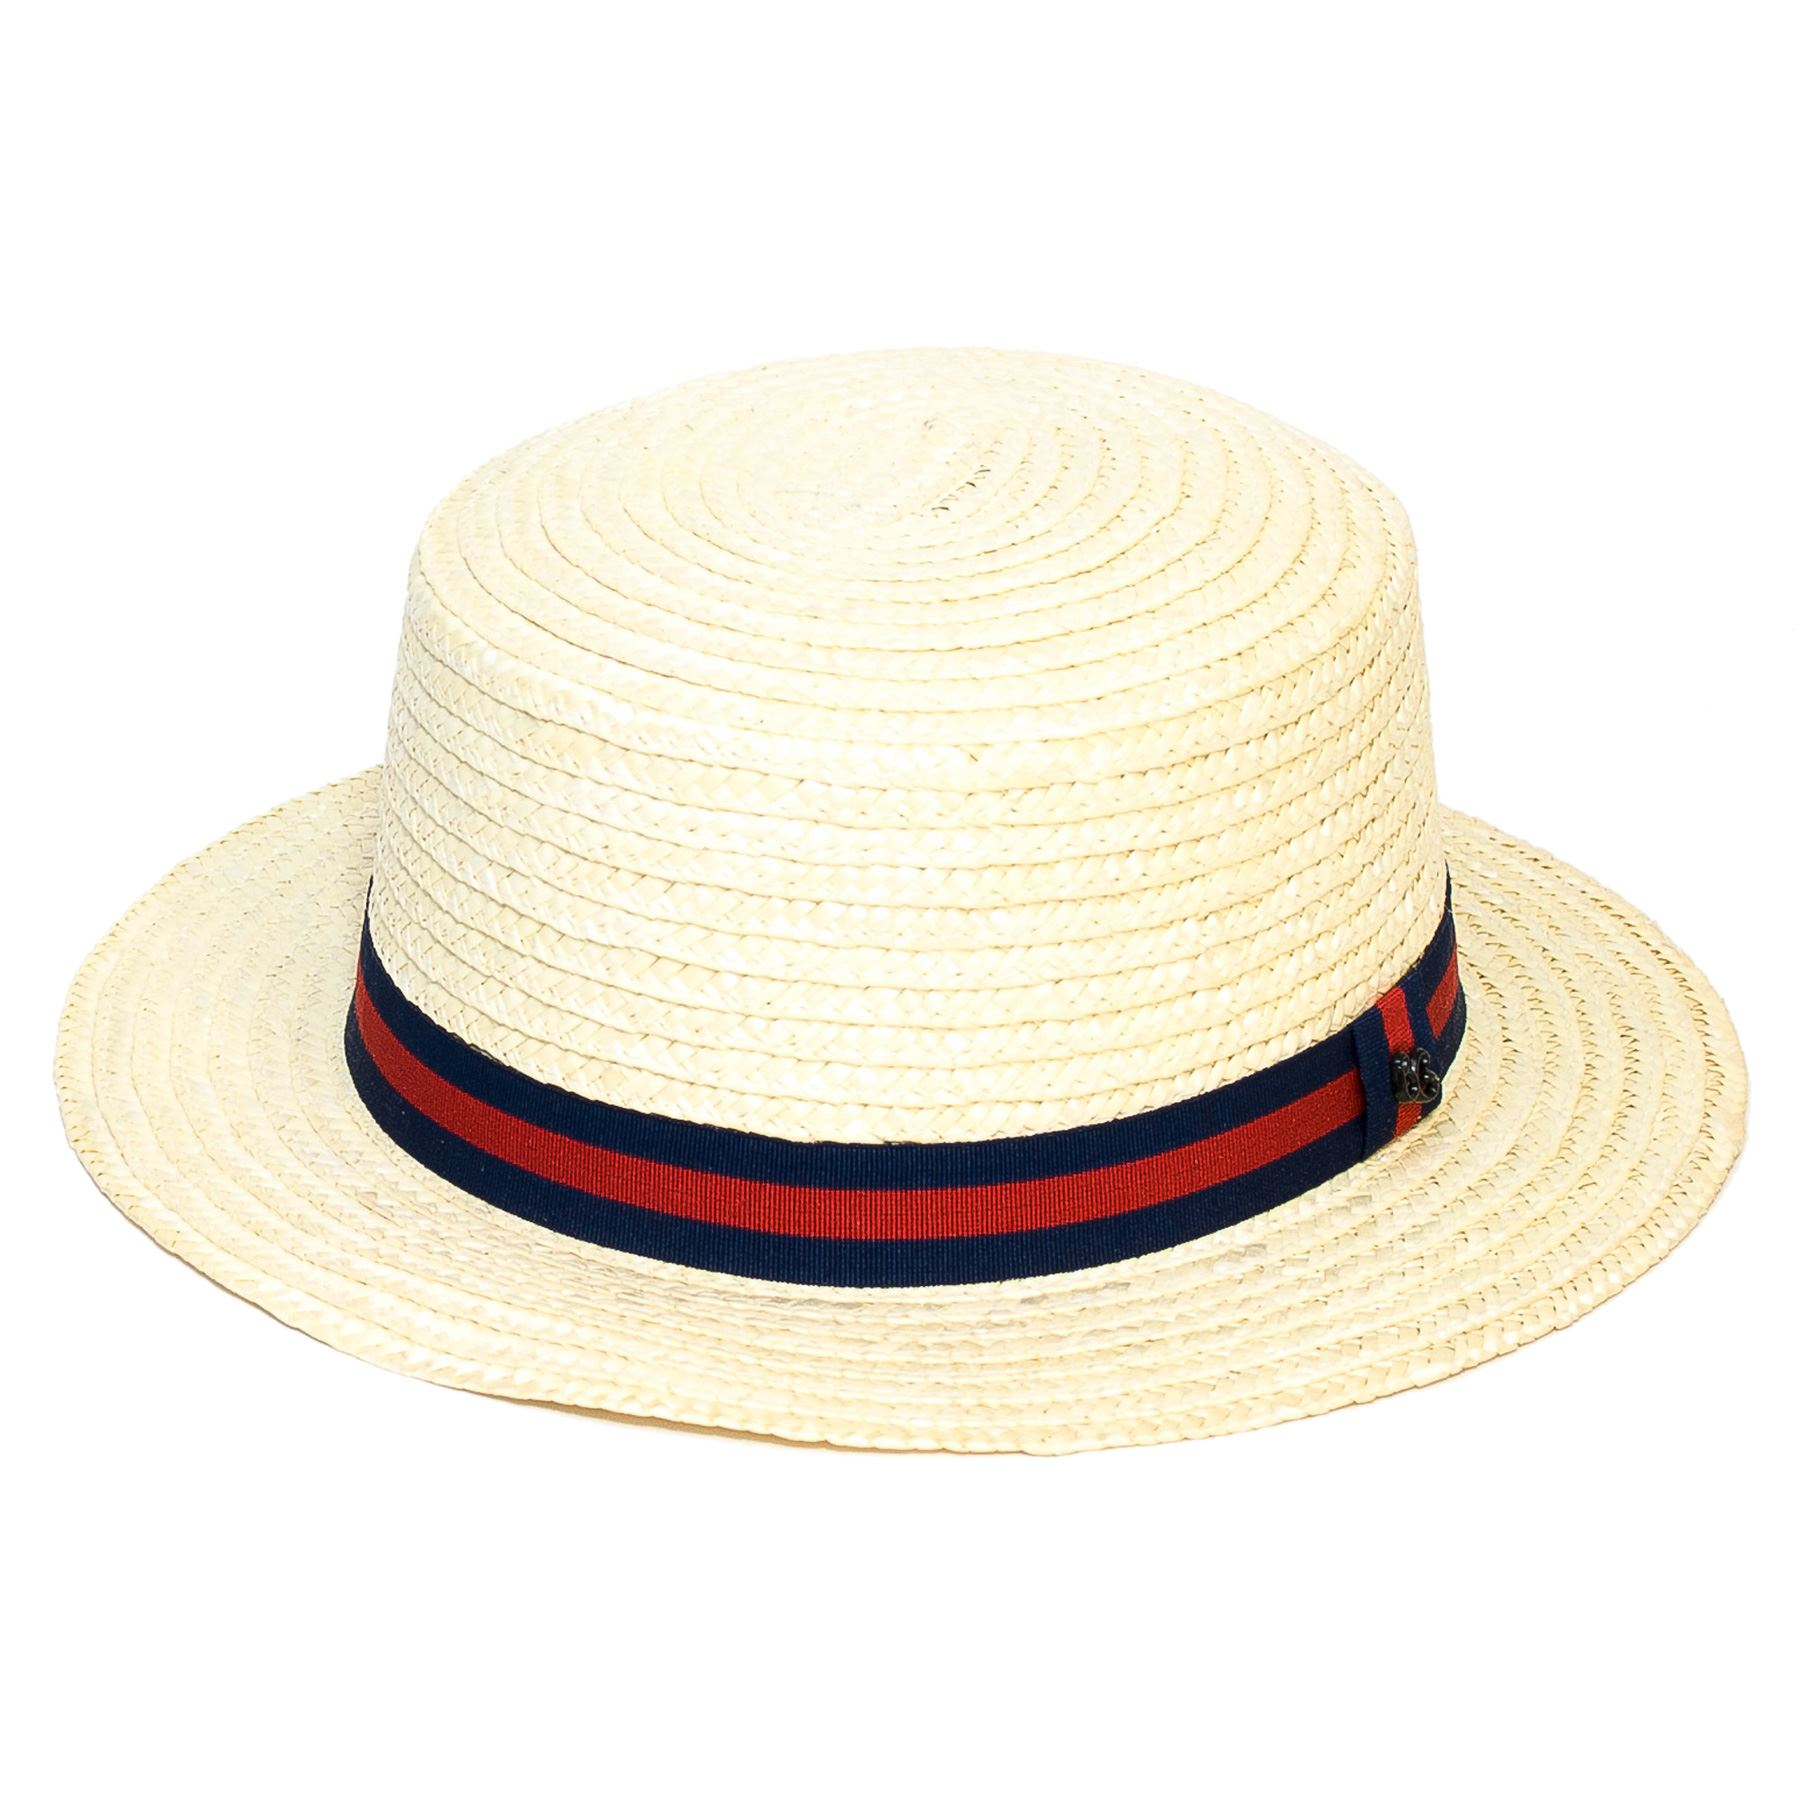 Shop eBay for great deals on Men's Straw Hats. You'll find new or used products in Men's Straw Hats on eBay. Free shipping on selected items.